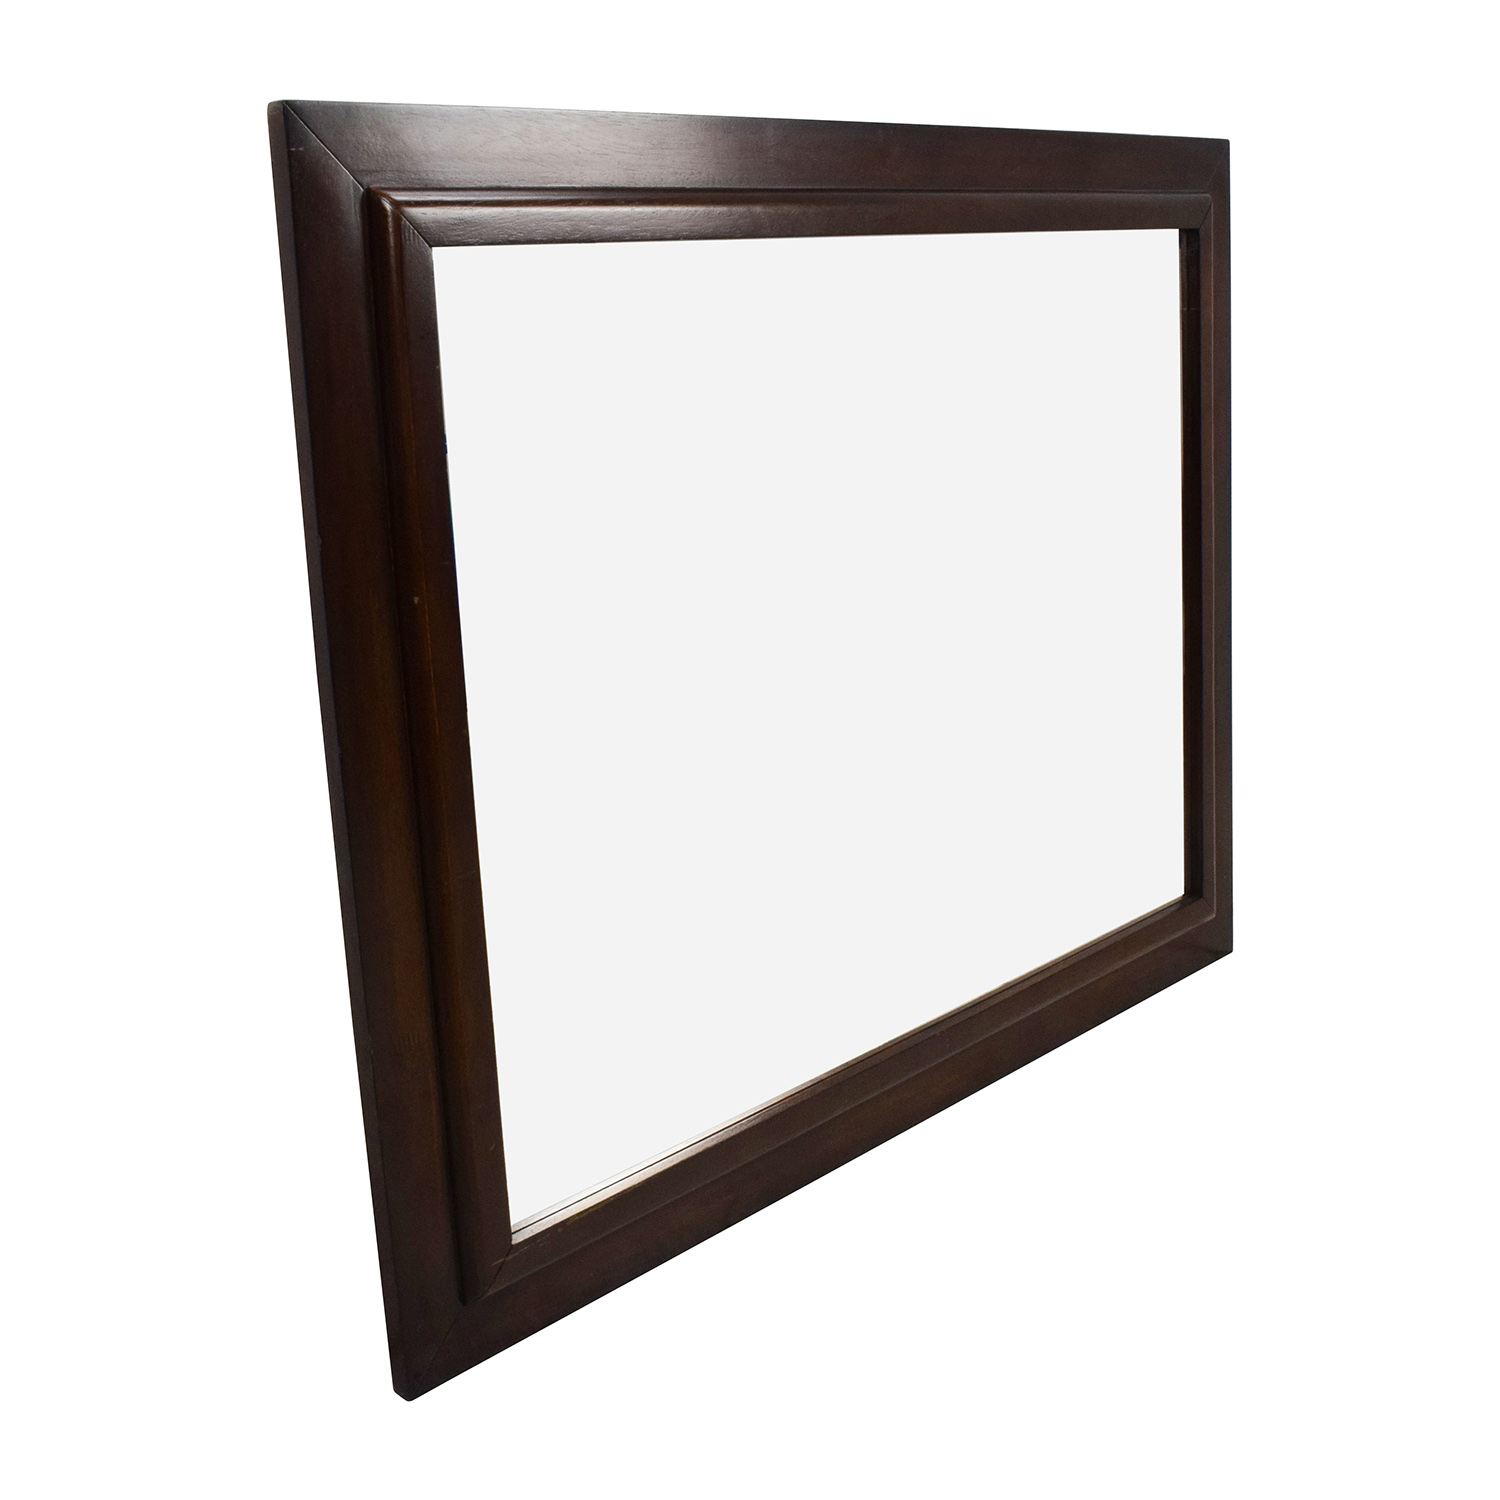 Wall framed mirrors